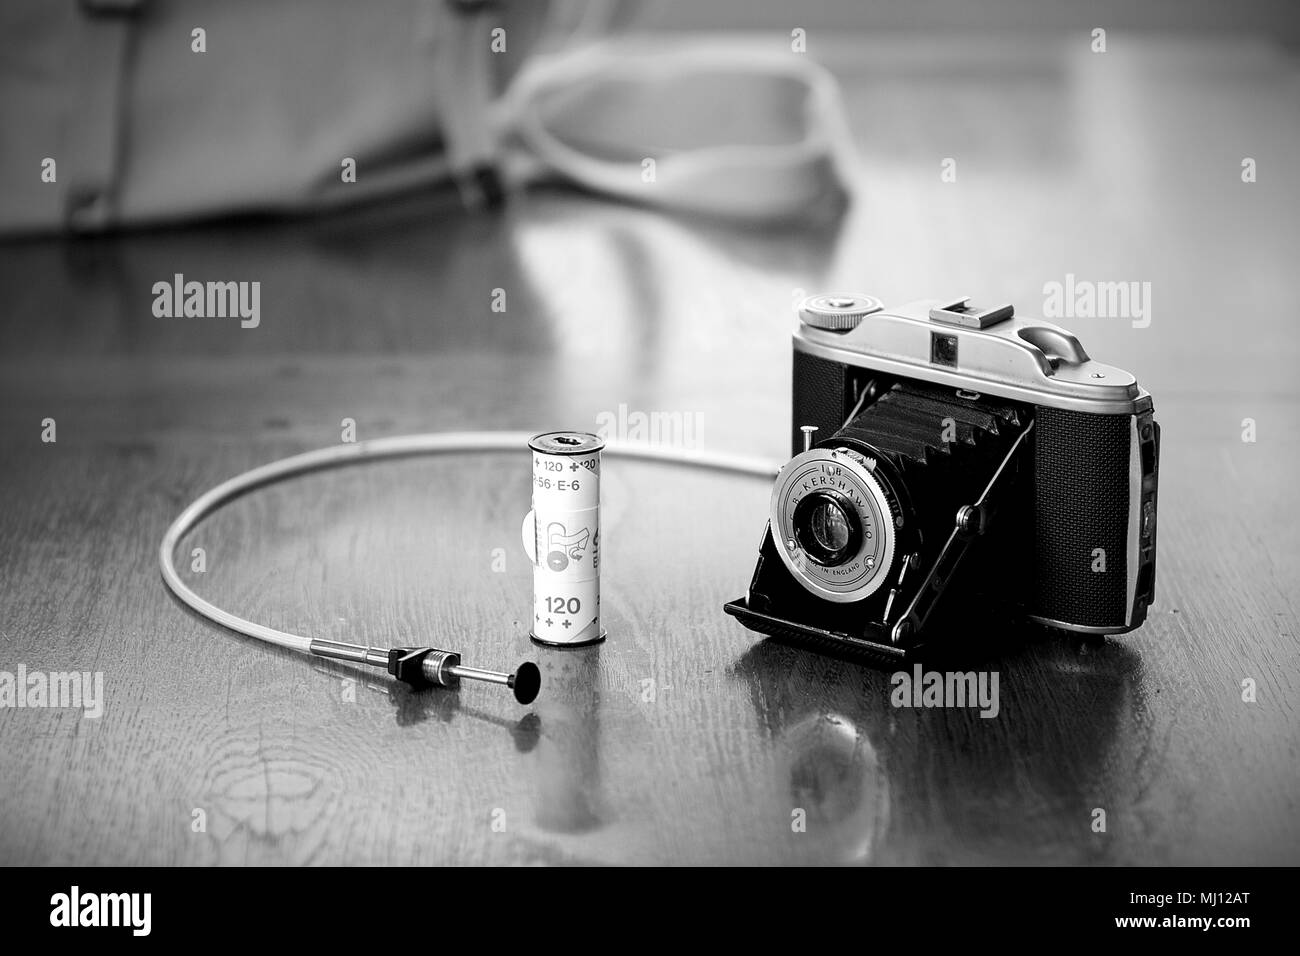 A G.B. Kershaw 110 Camera using 120 film plus a roll of 120 film and a cable release. - Stock Image